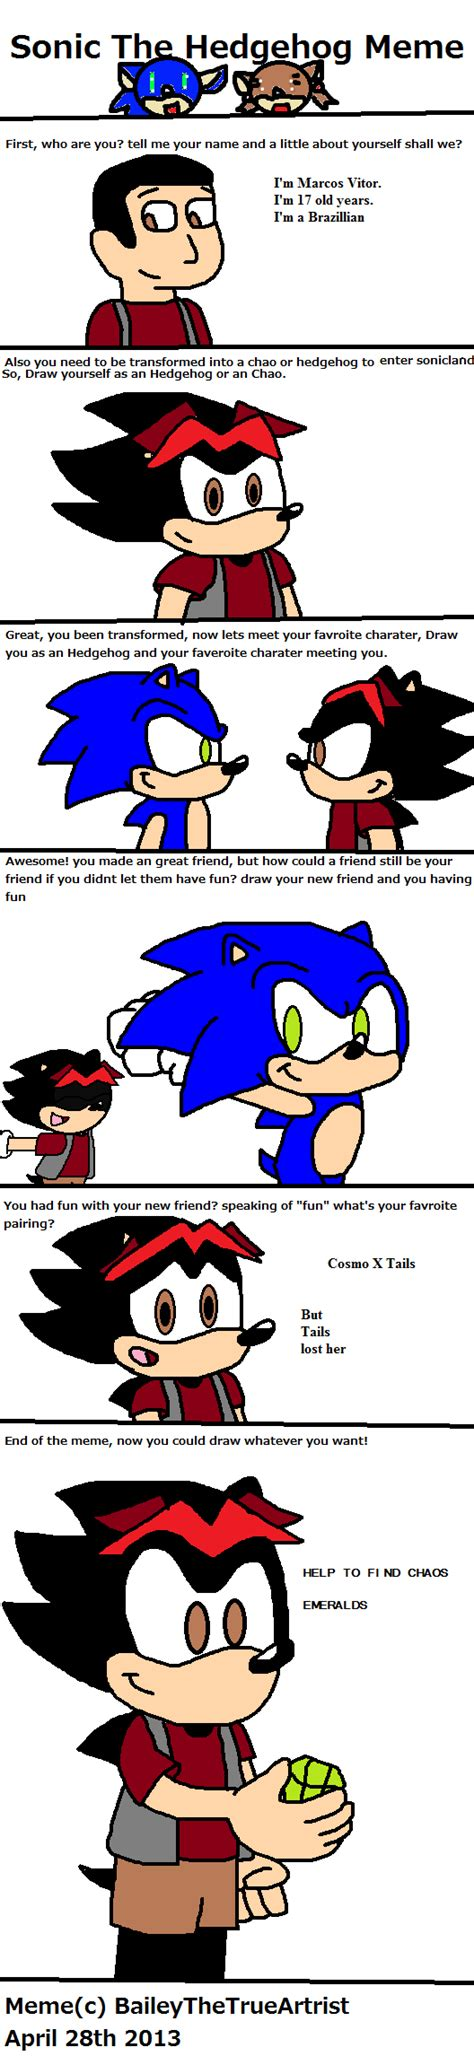 Sonic The Hedgehog Meme - sonic the hedgehog meme featuring me by marcoslucky96 on